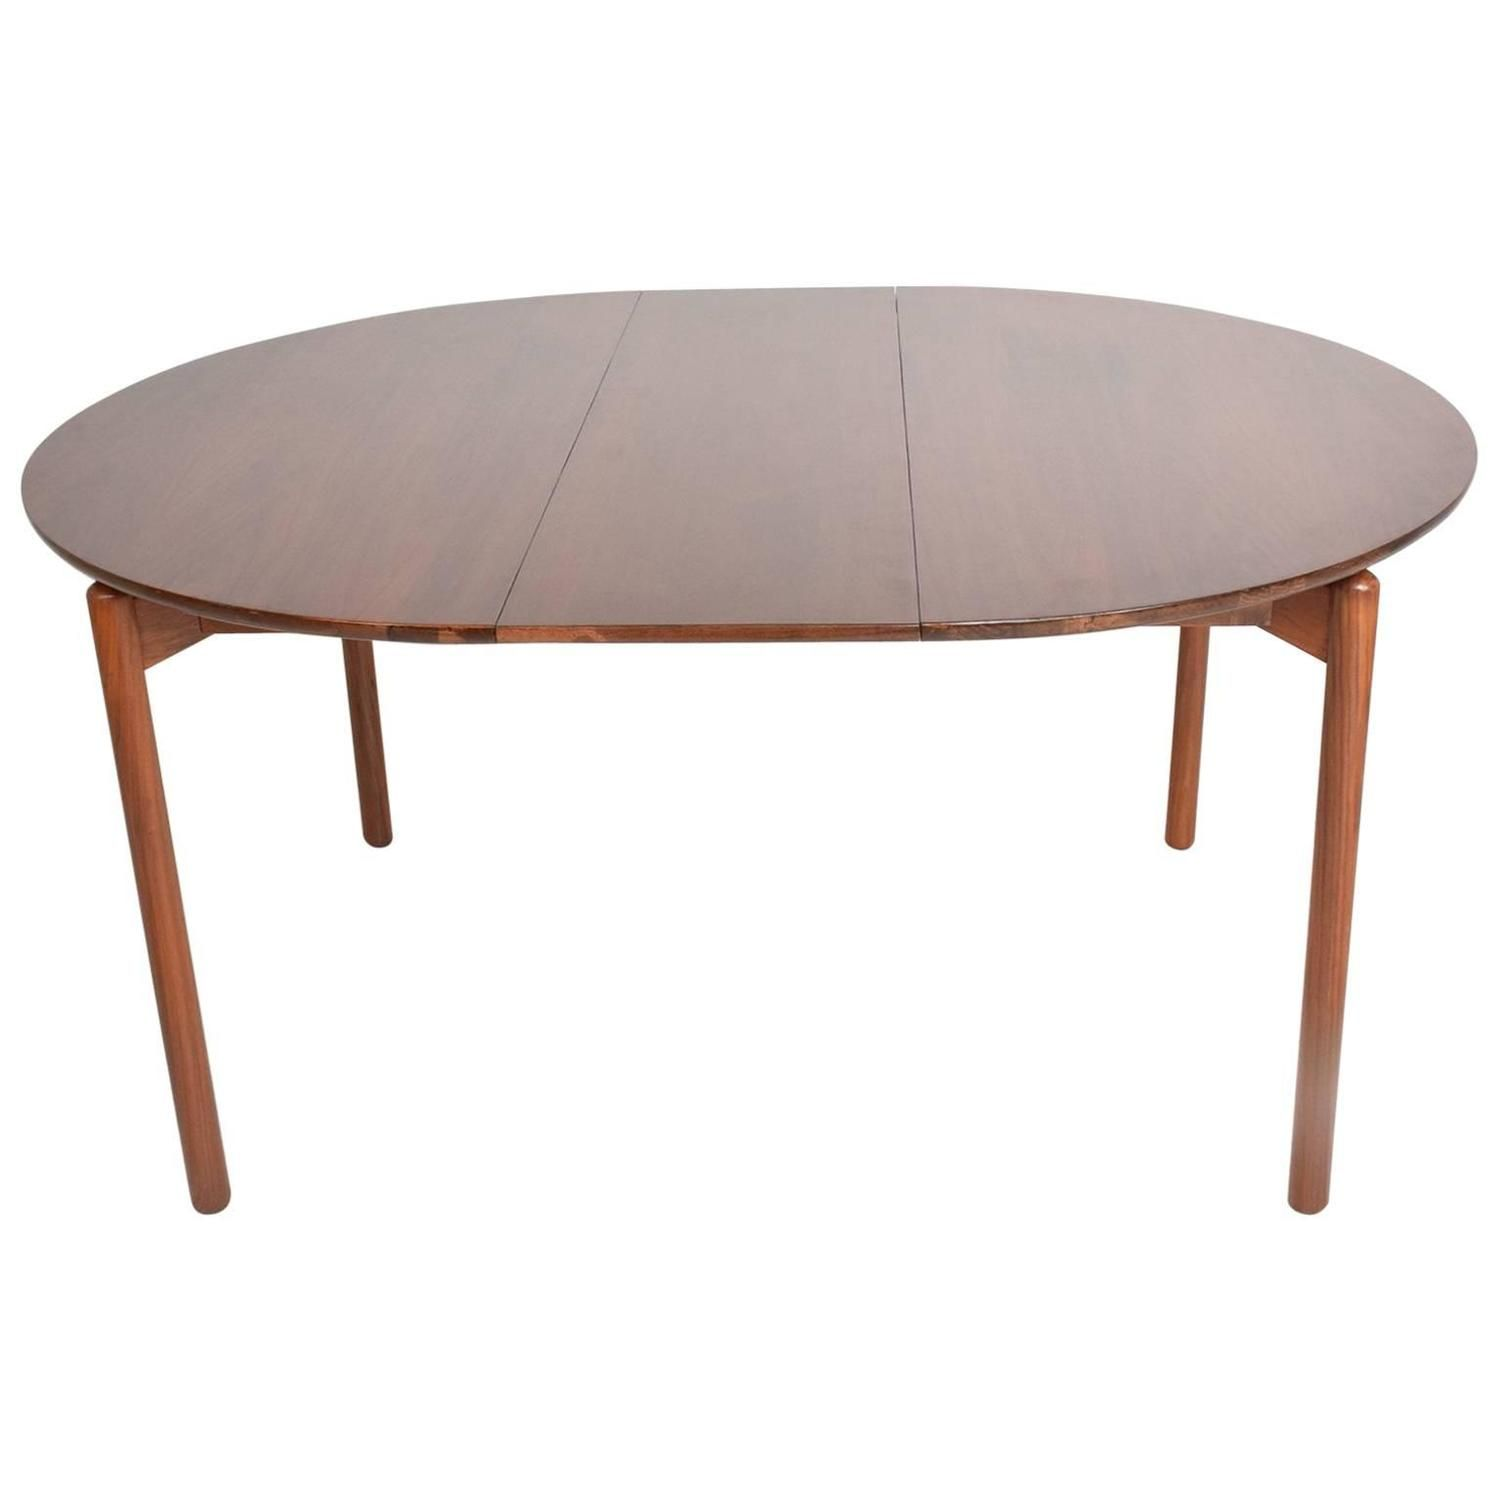 Mid century modern walnut dining table by greta grossman walnut mid century modern walnut dining table by greta grossman geotapseo Gallery